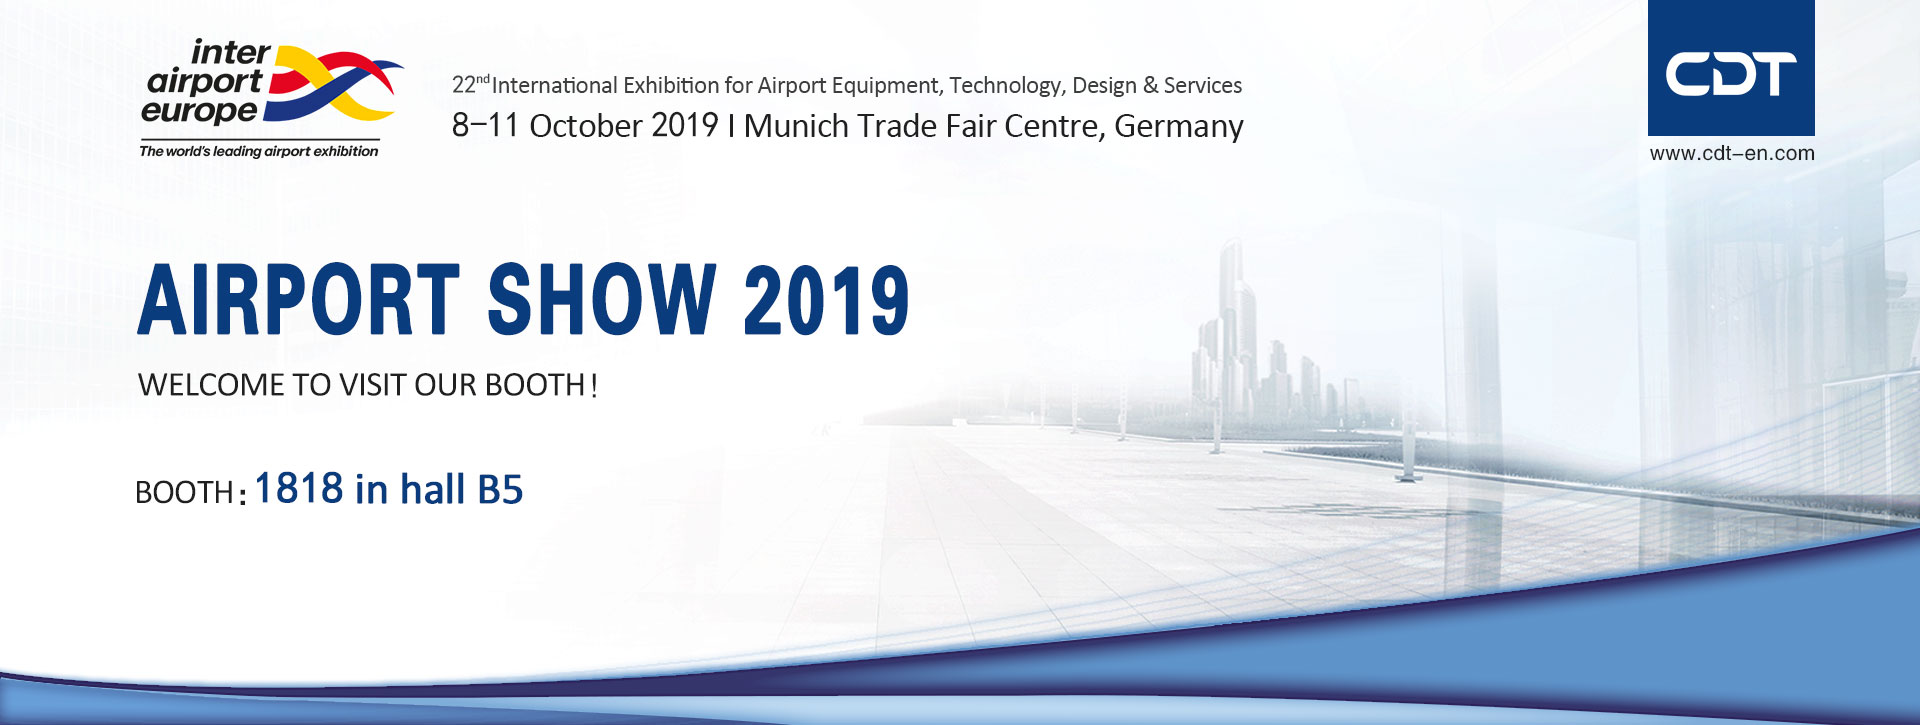 airport show 2019 Germany